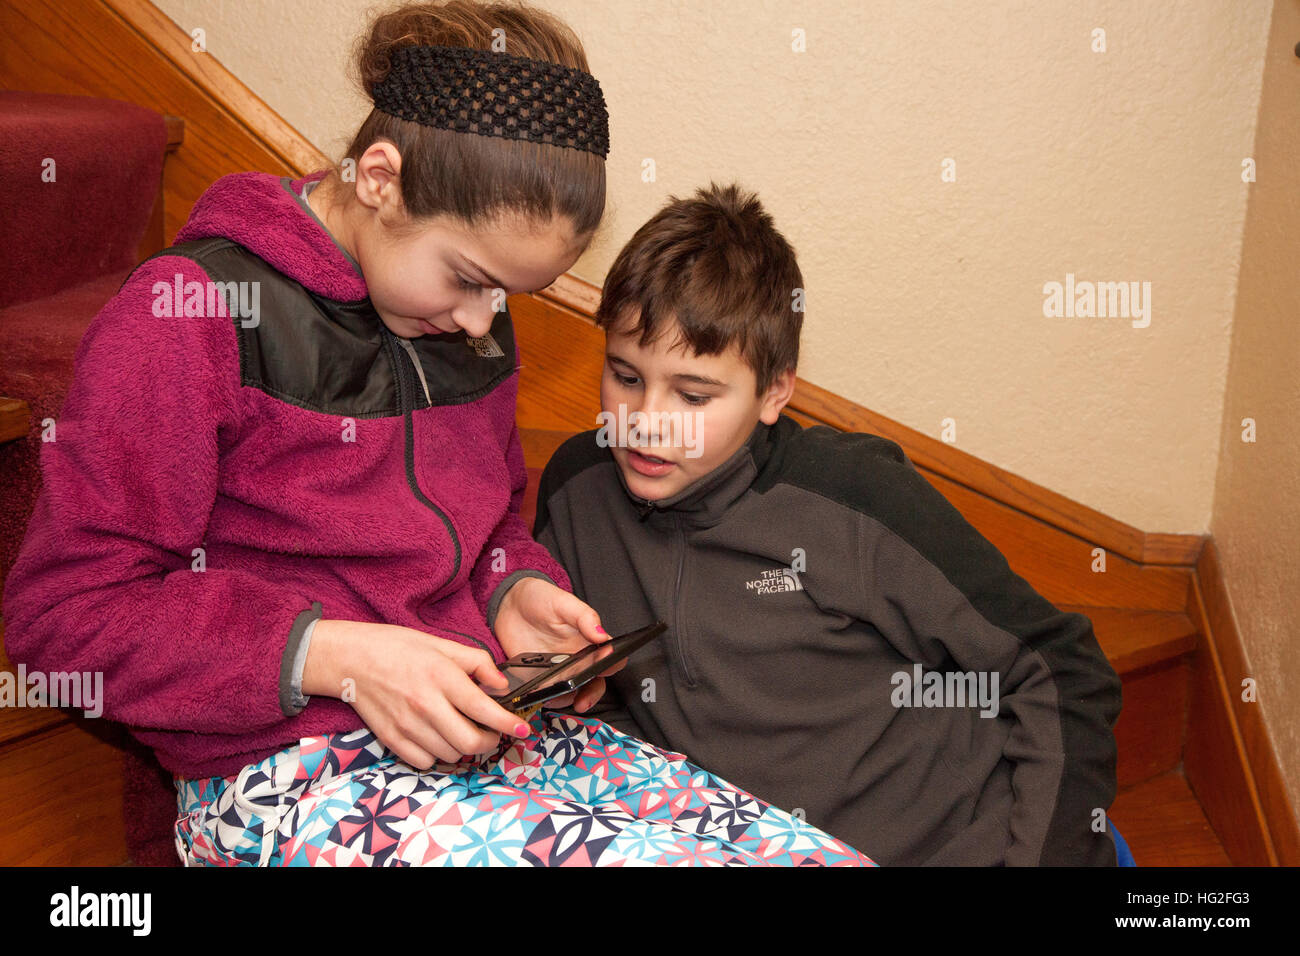 Girl and boy age 12 and 10 playing video game on small electronic handheld device. St Paul Minnesota MN USA Stock Photo